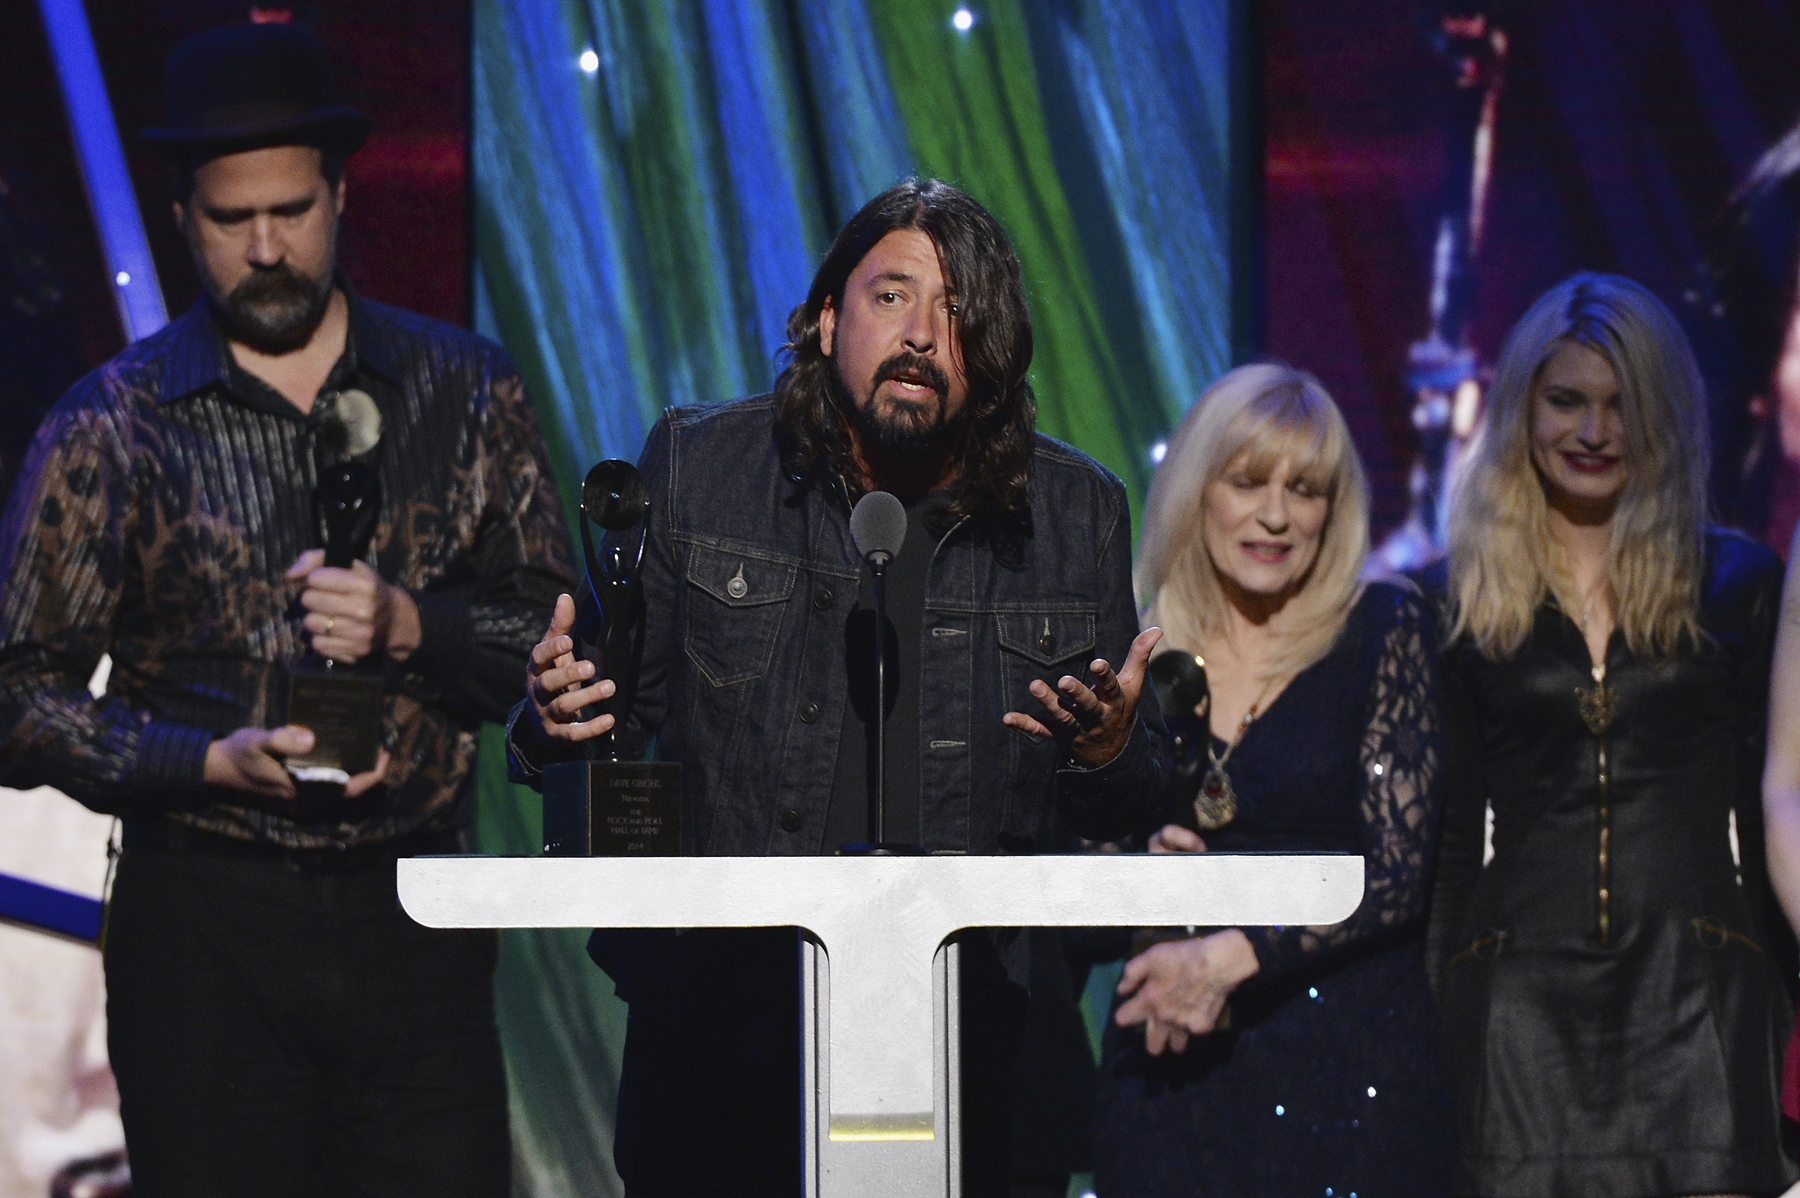 Read Nirvana's Rock and Roll Hall of Fame Acceptance Speech